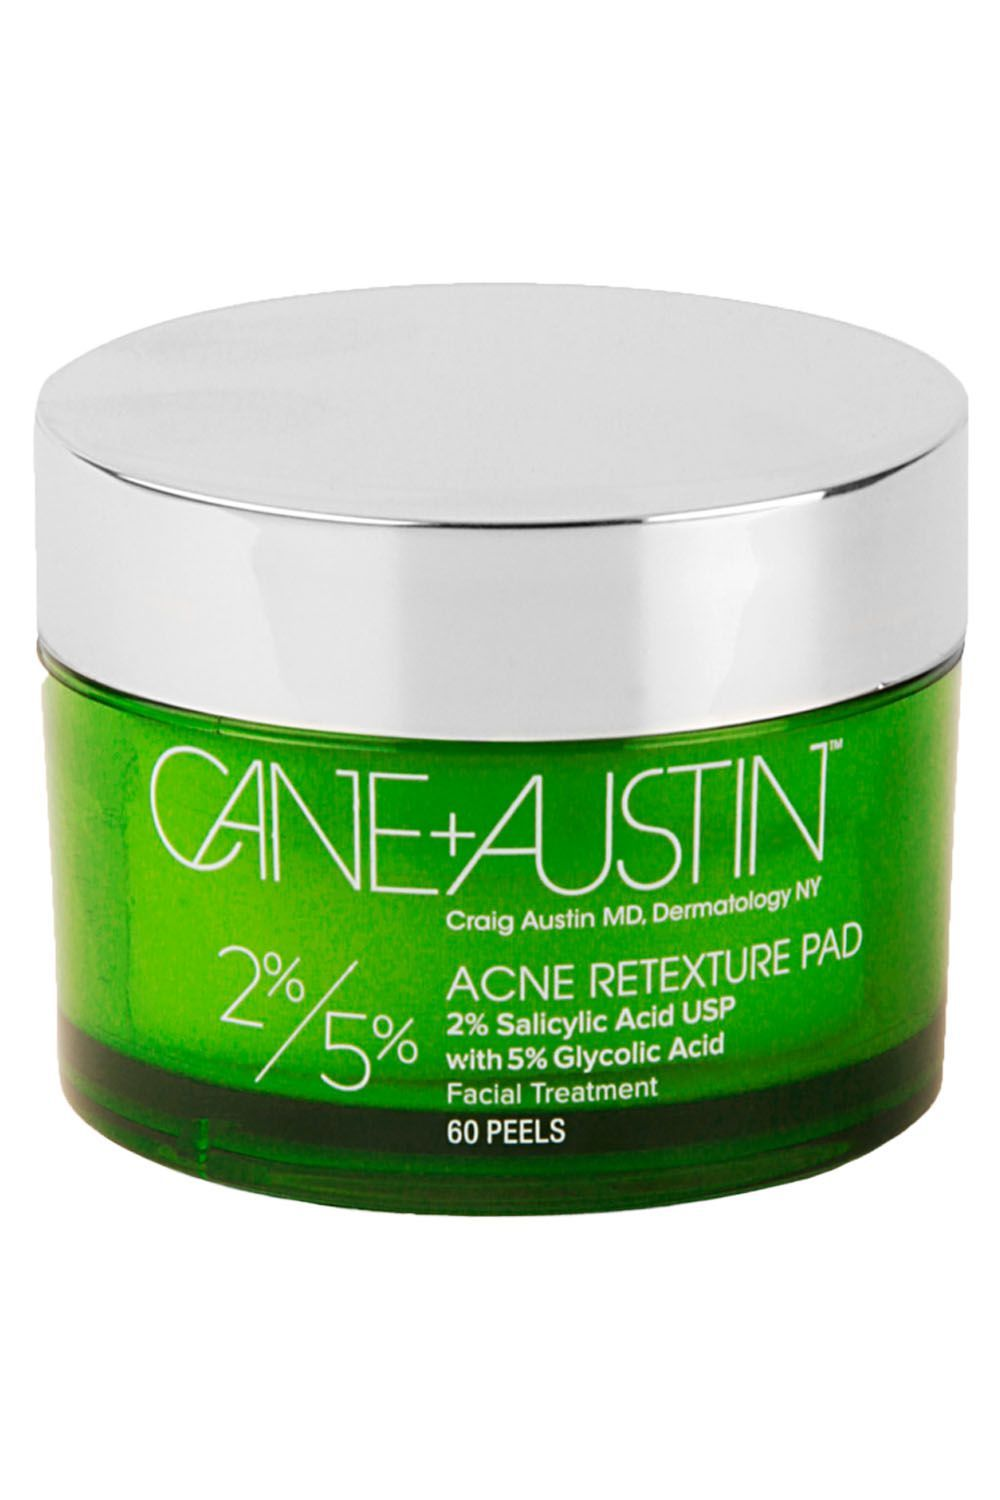 How To Get Rid Of Acne Scars 2020 Best Products For Acne Scars